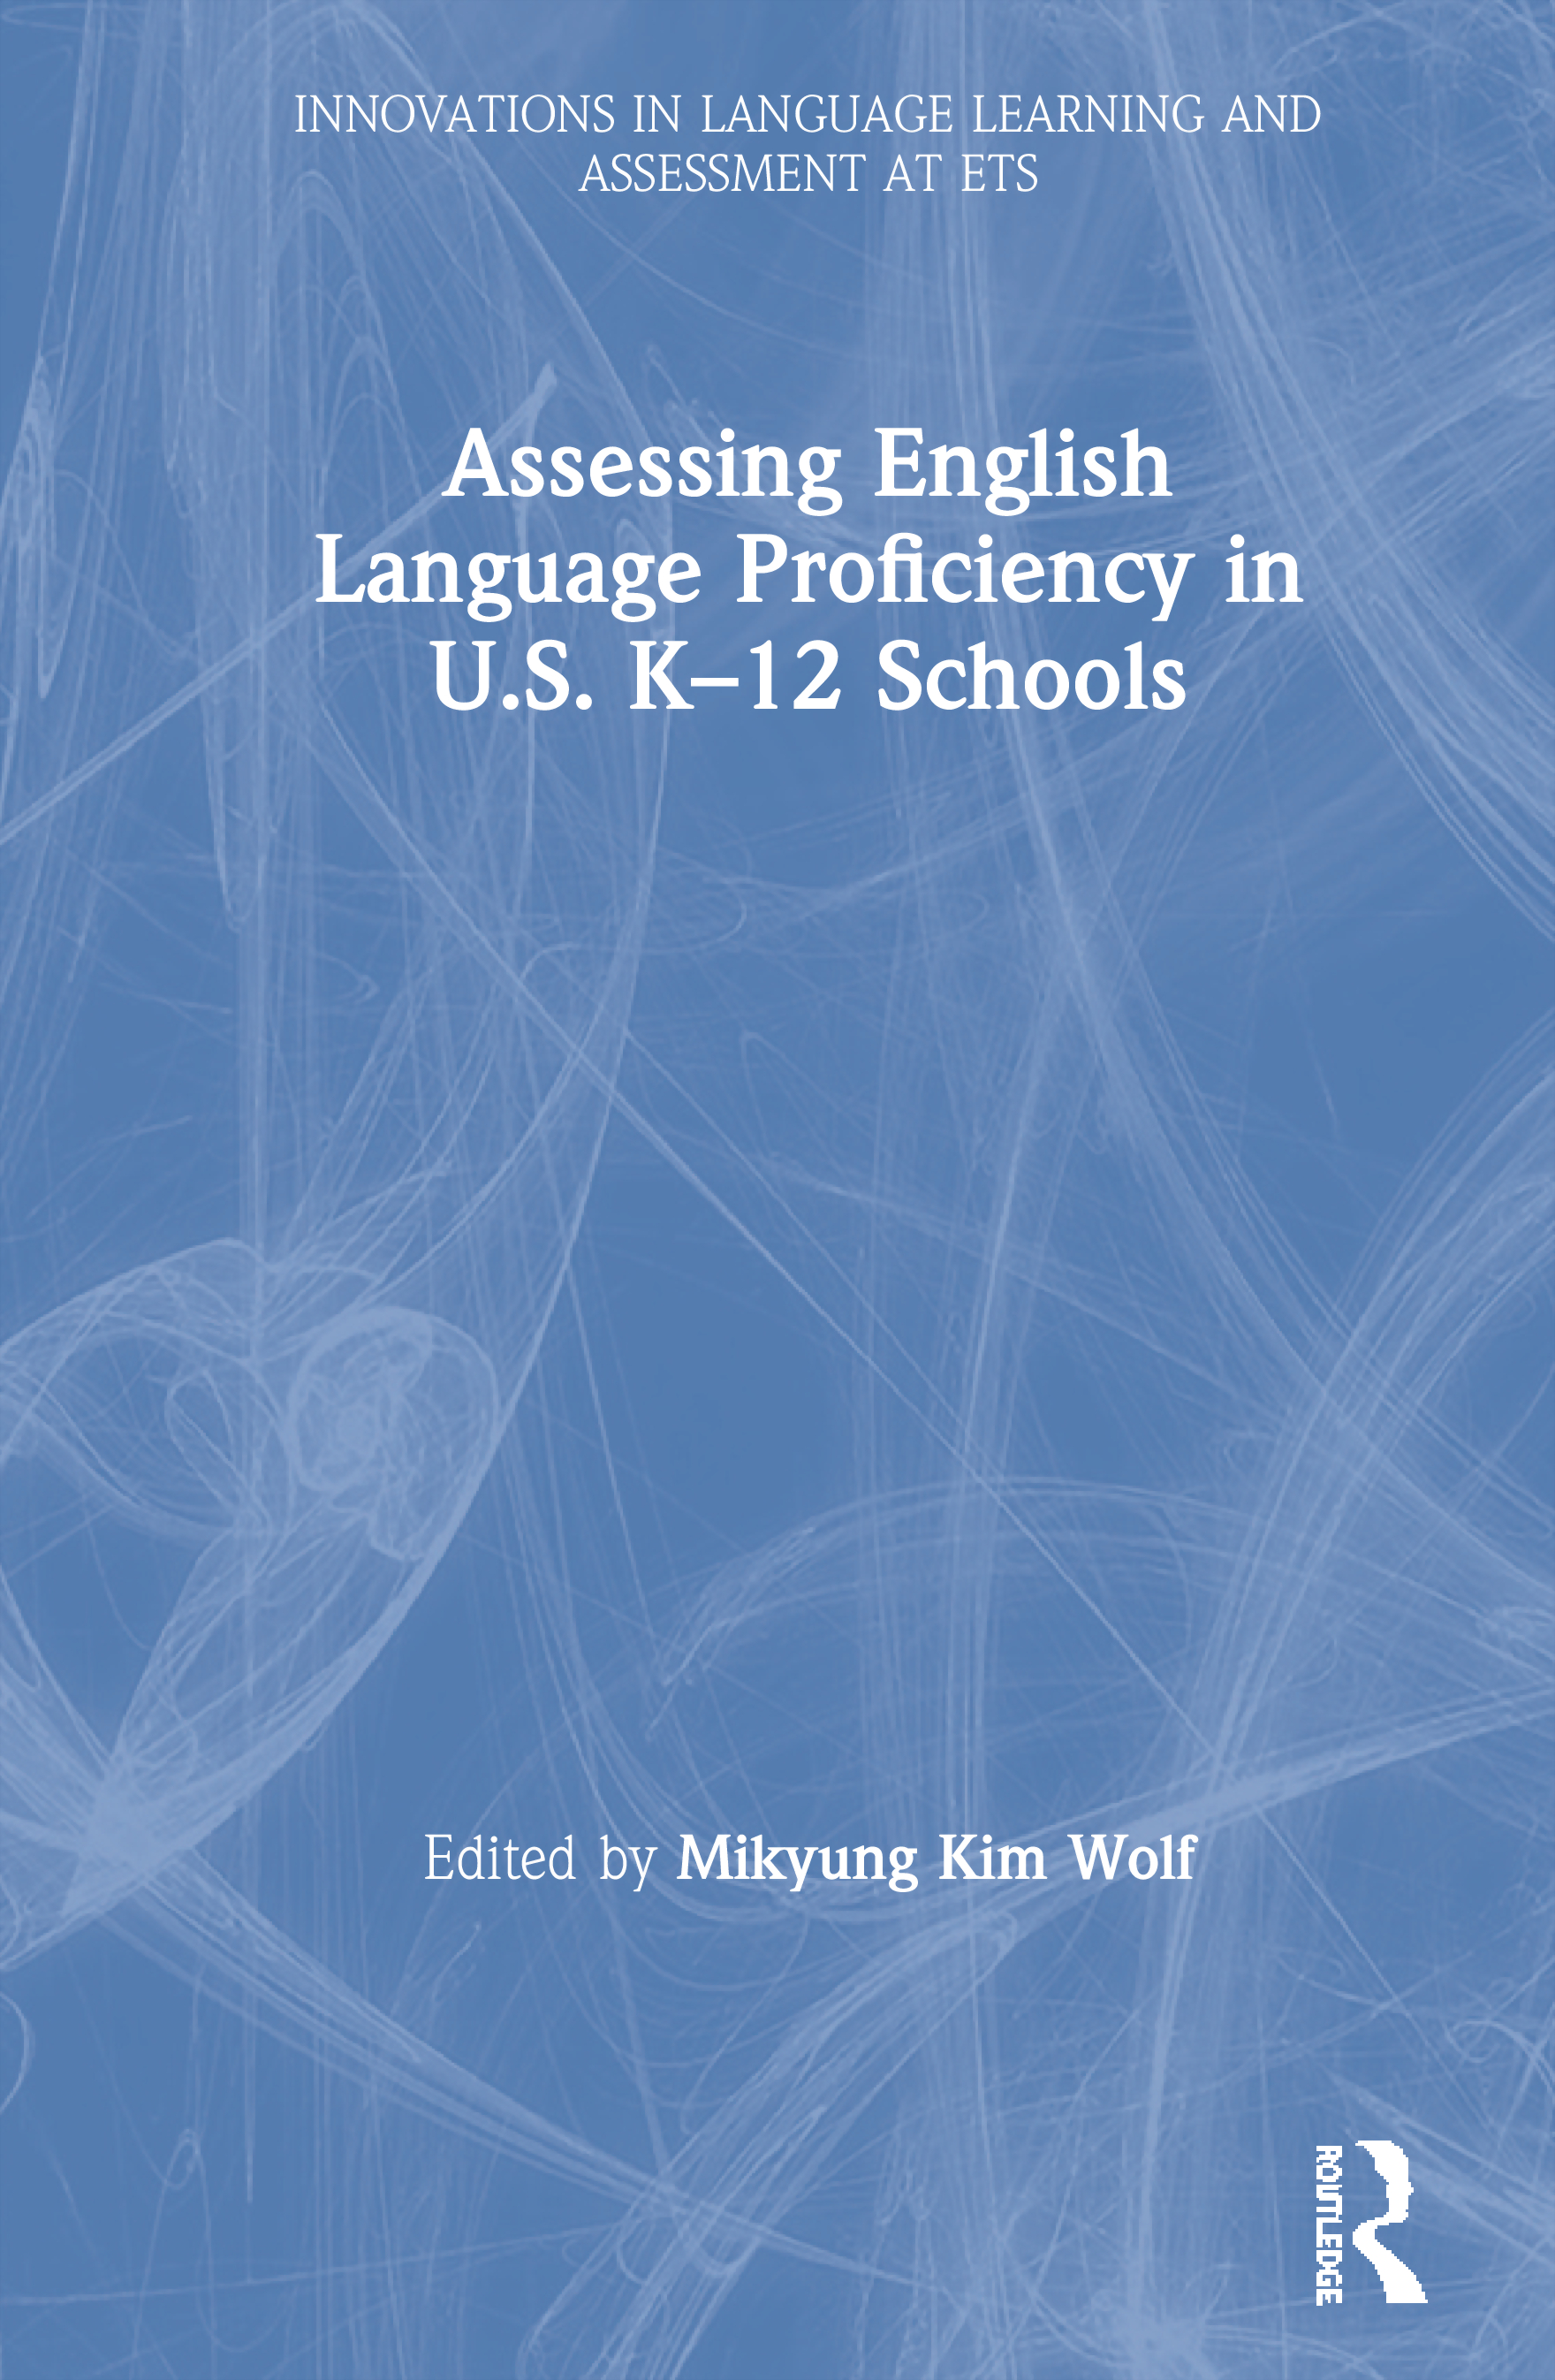 Assessing English Language Proficiency in U.S. K-12 Schools book cover